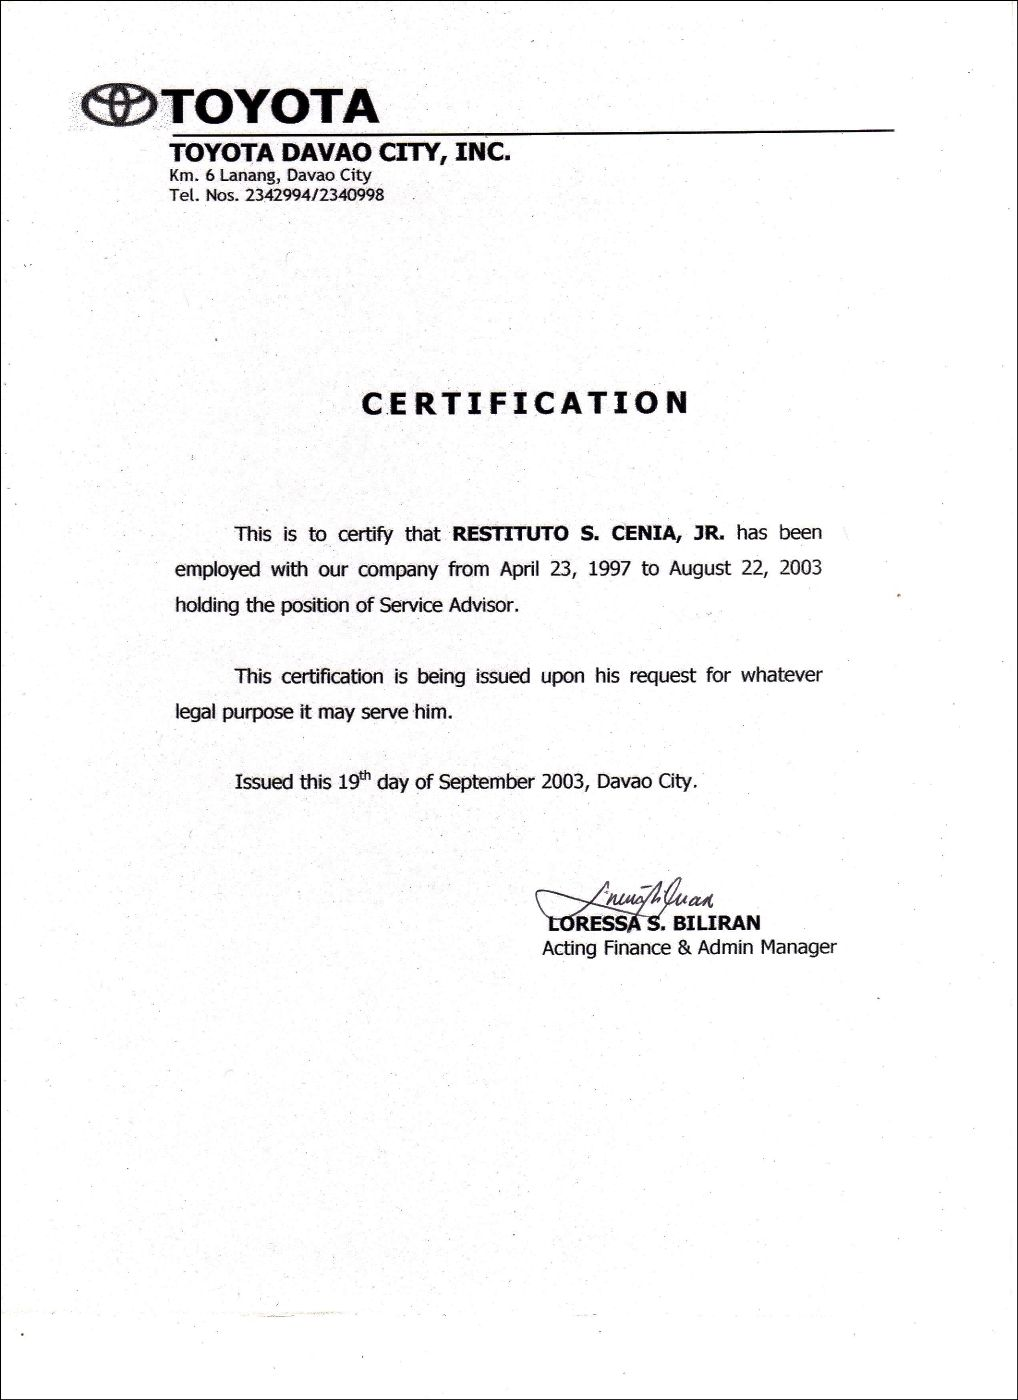 Employment certificate sample best templates pinterest employment certificate sample best templates pinterest employmentyota davao employmentg yelopaper